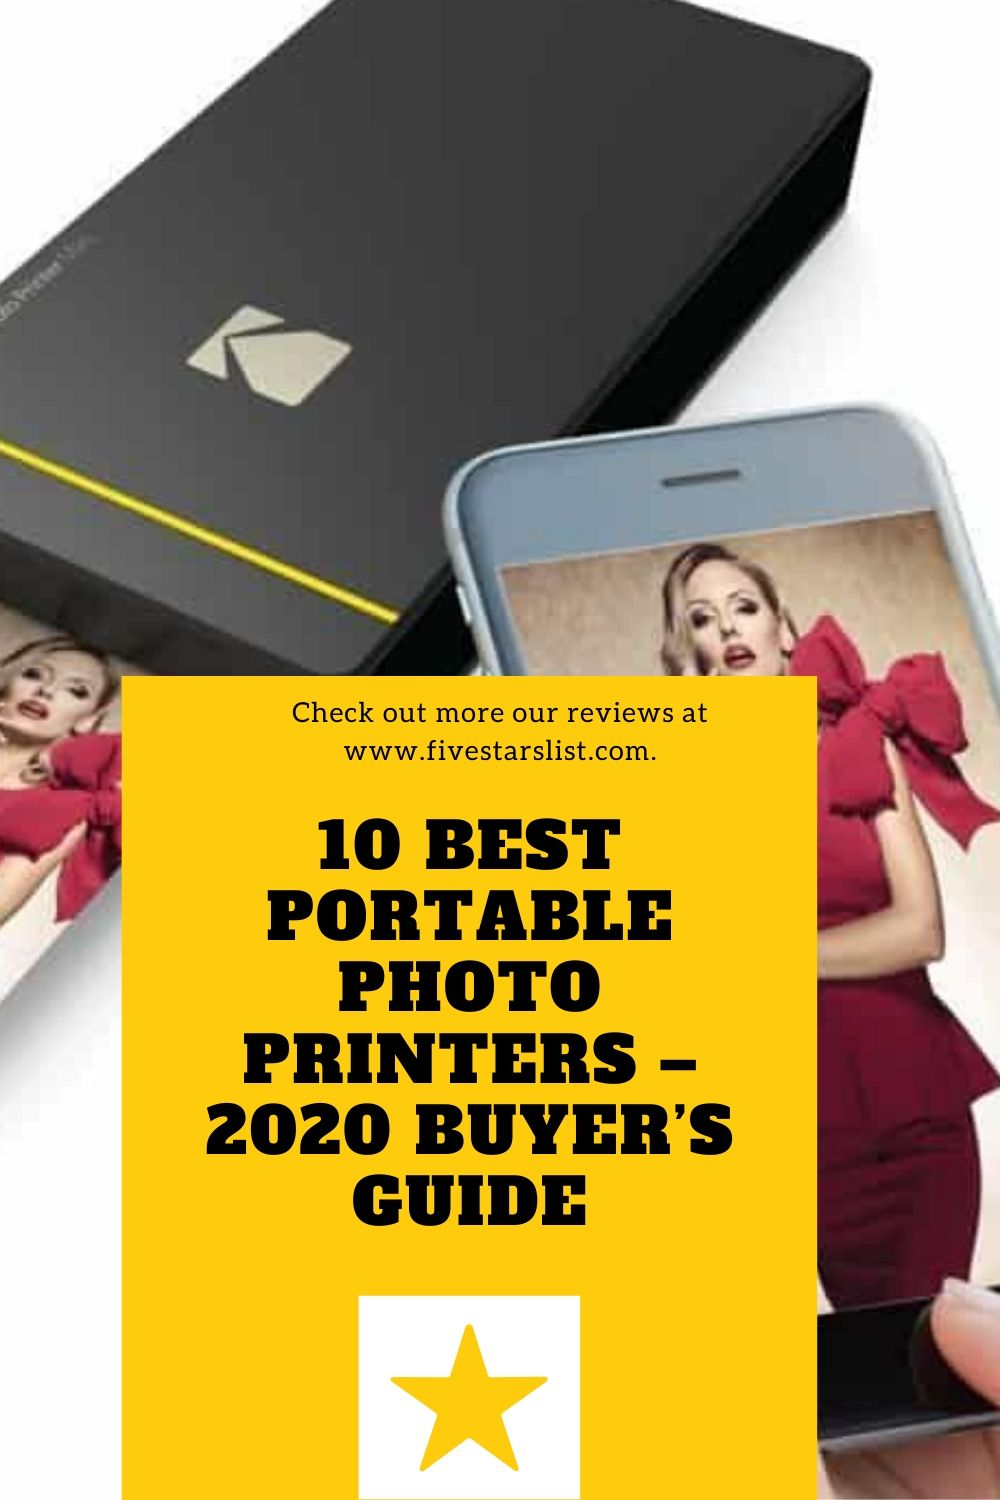 10 Best Portable Photo Printers – Buyer's Guide